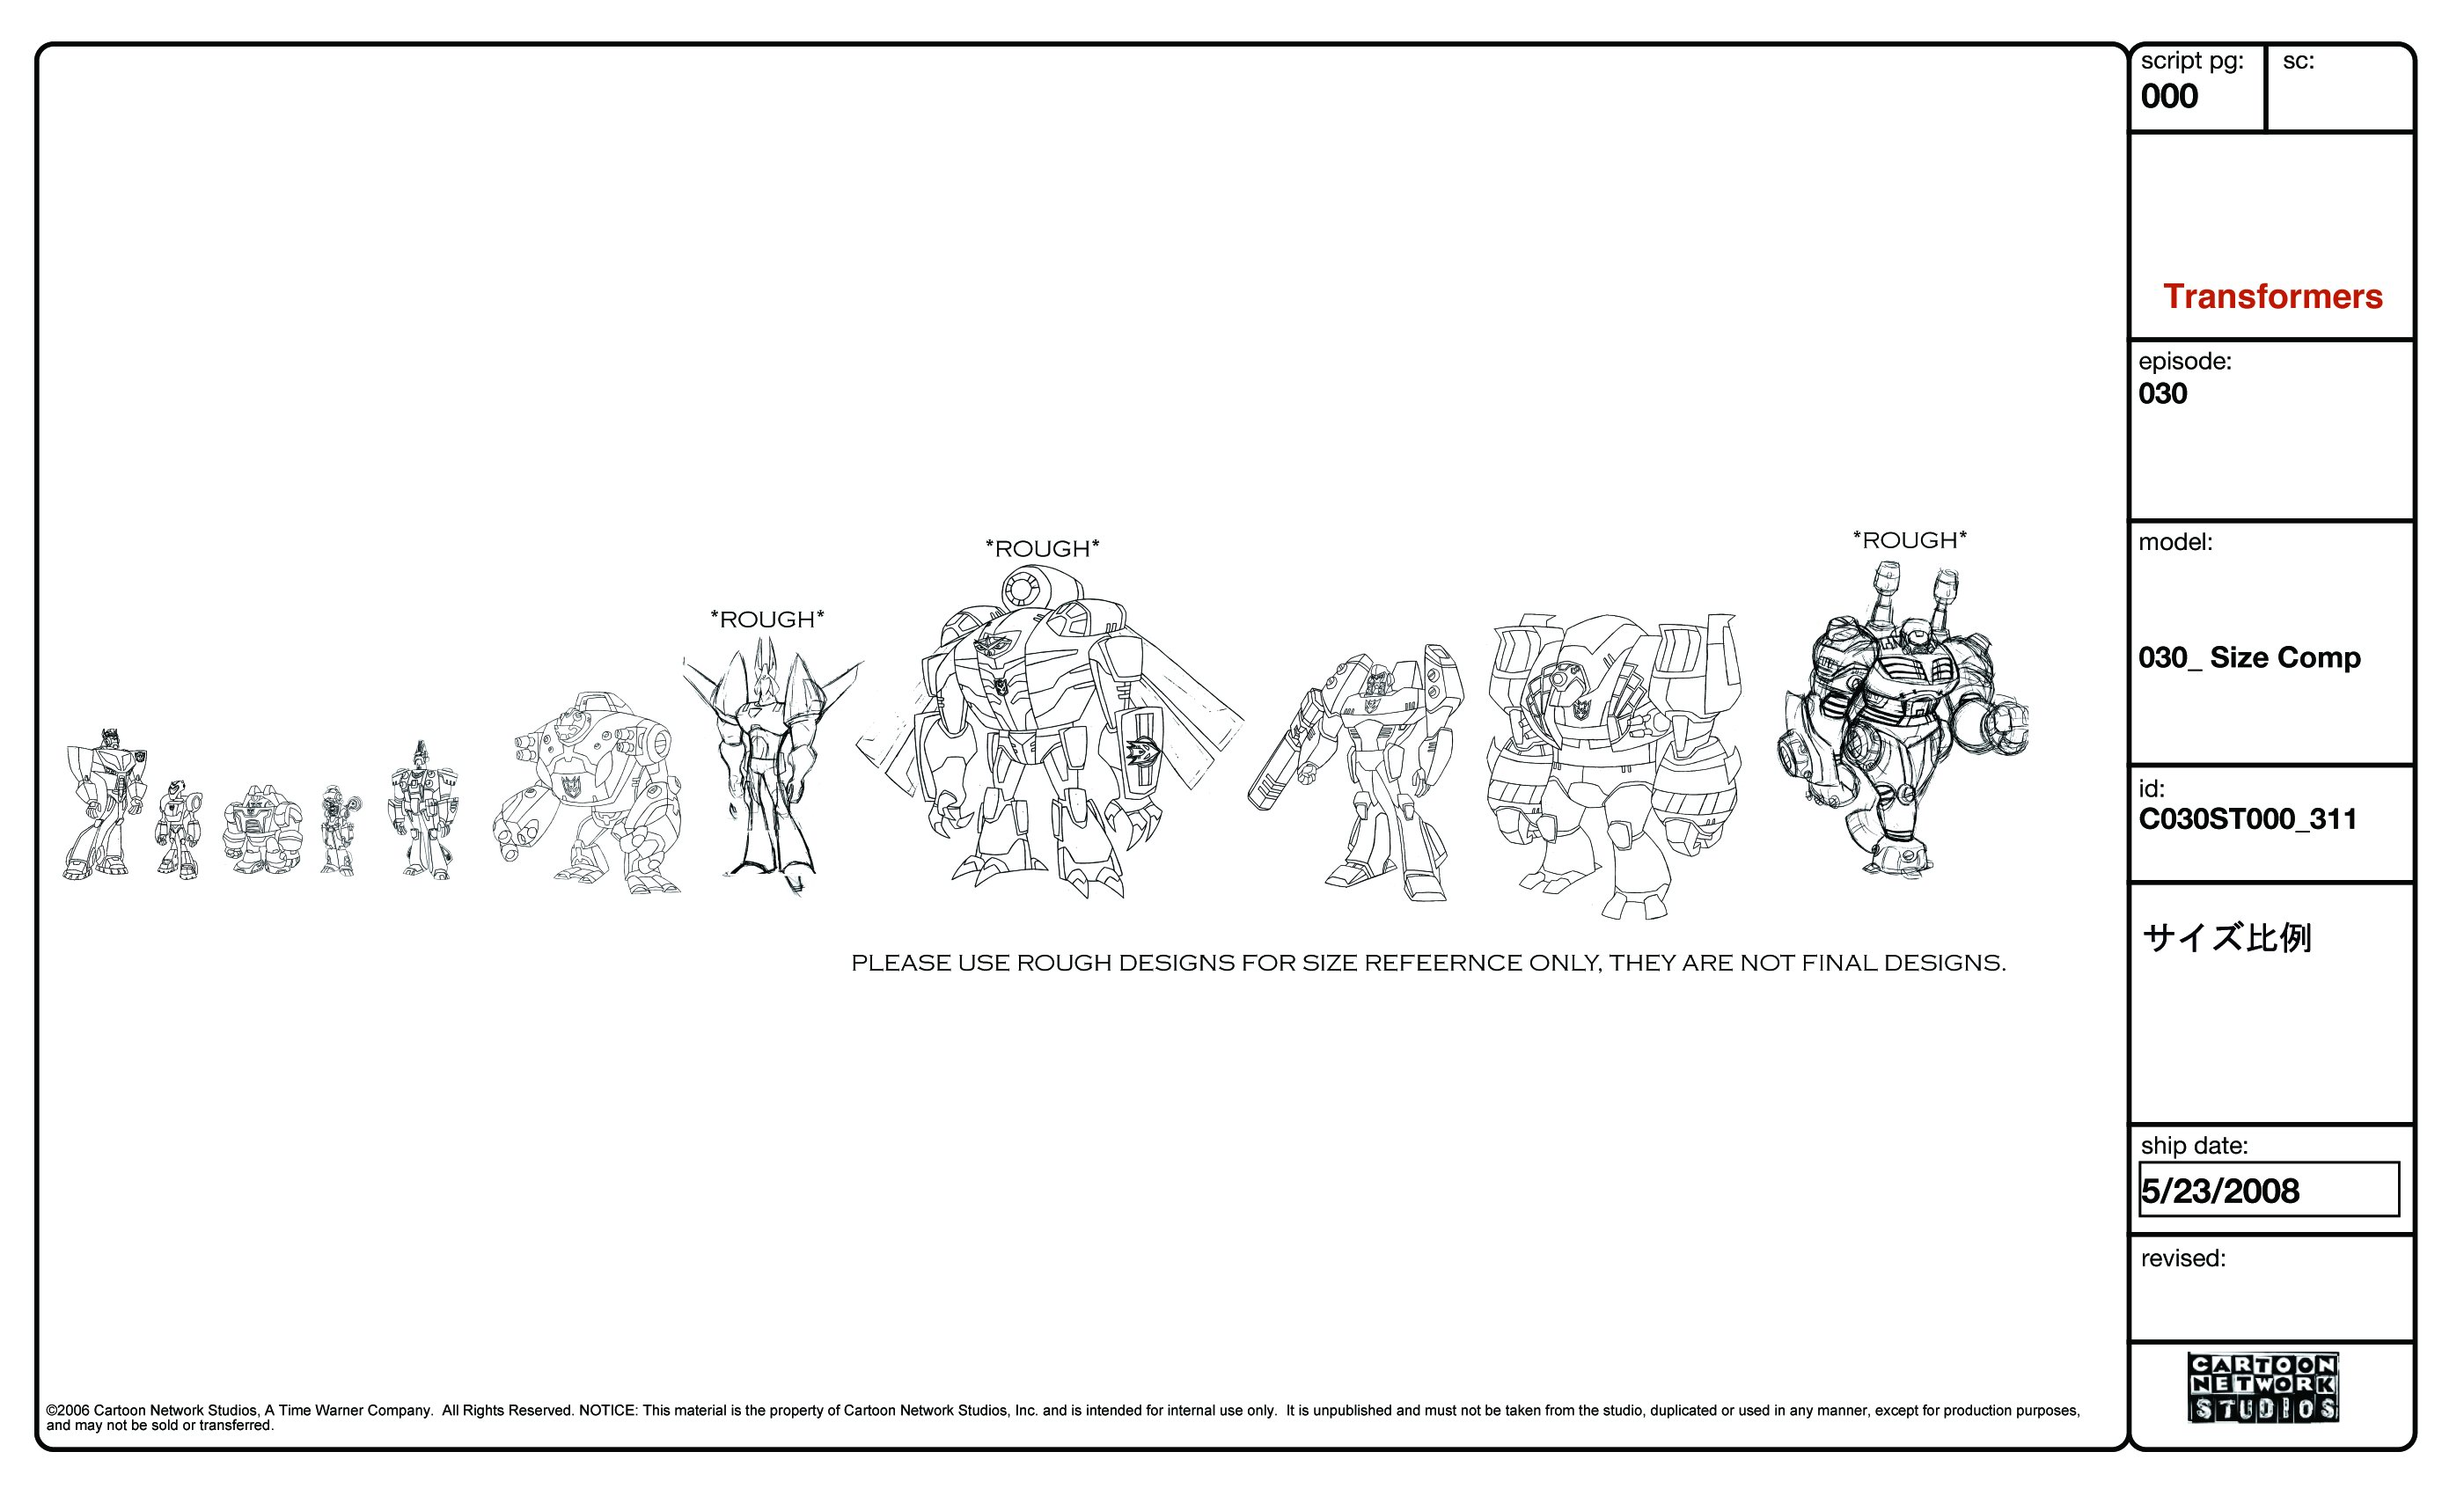 Share some TF:A design and spoiler-001ac030st000_311.jpg